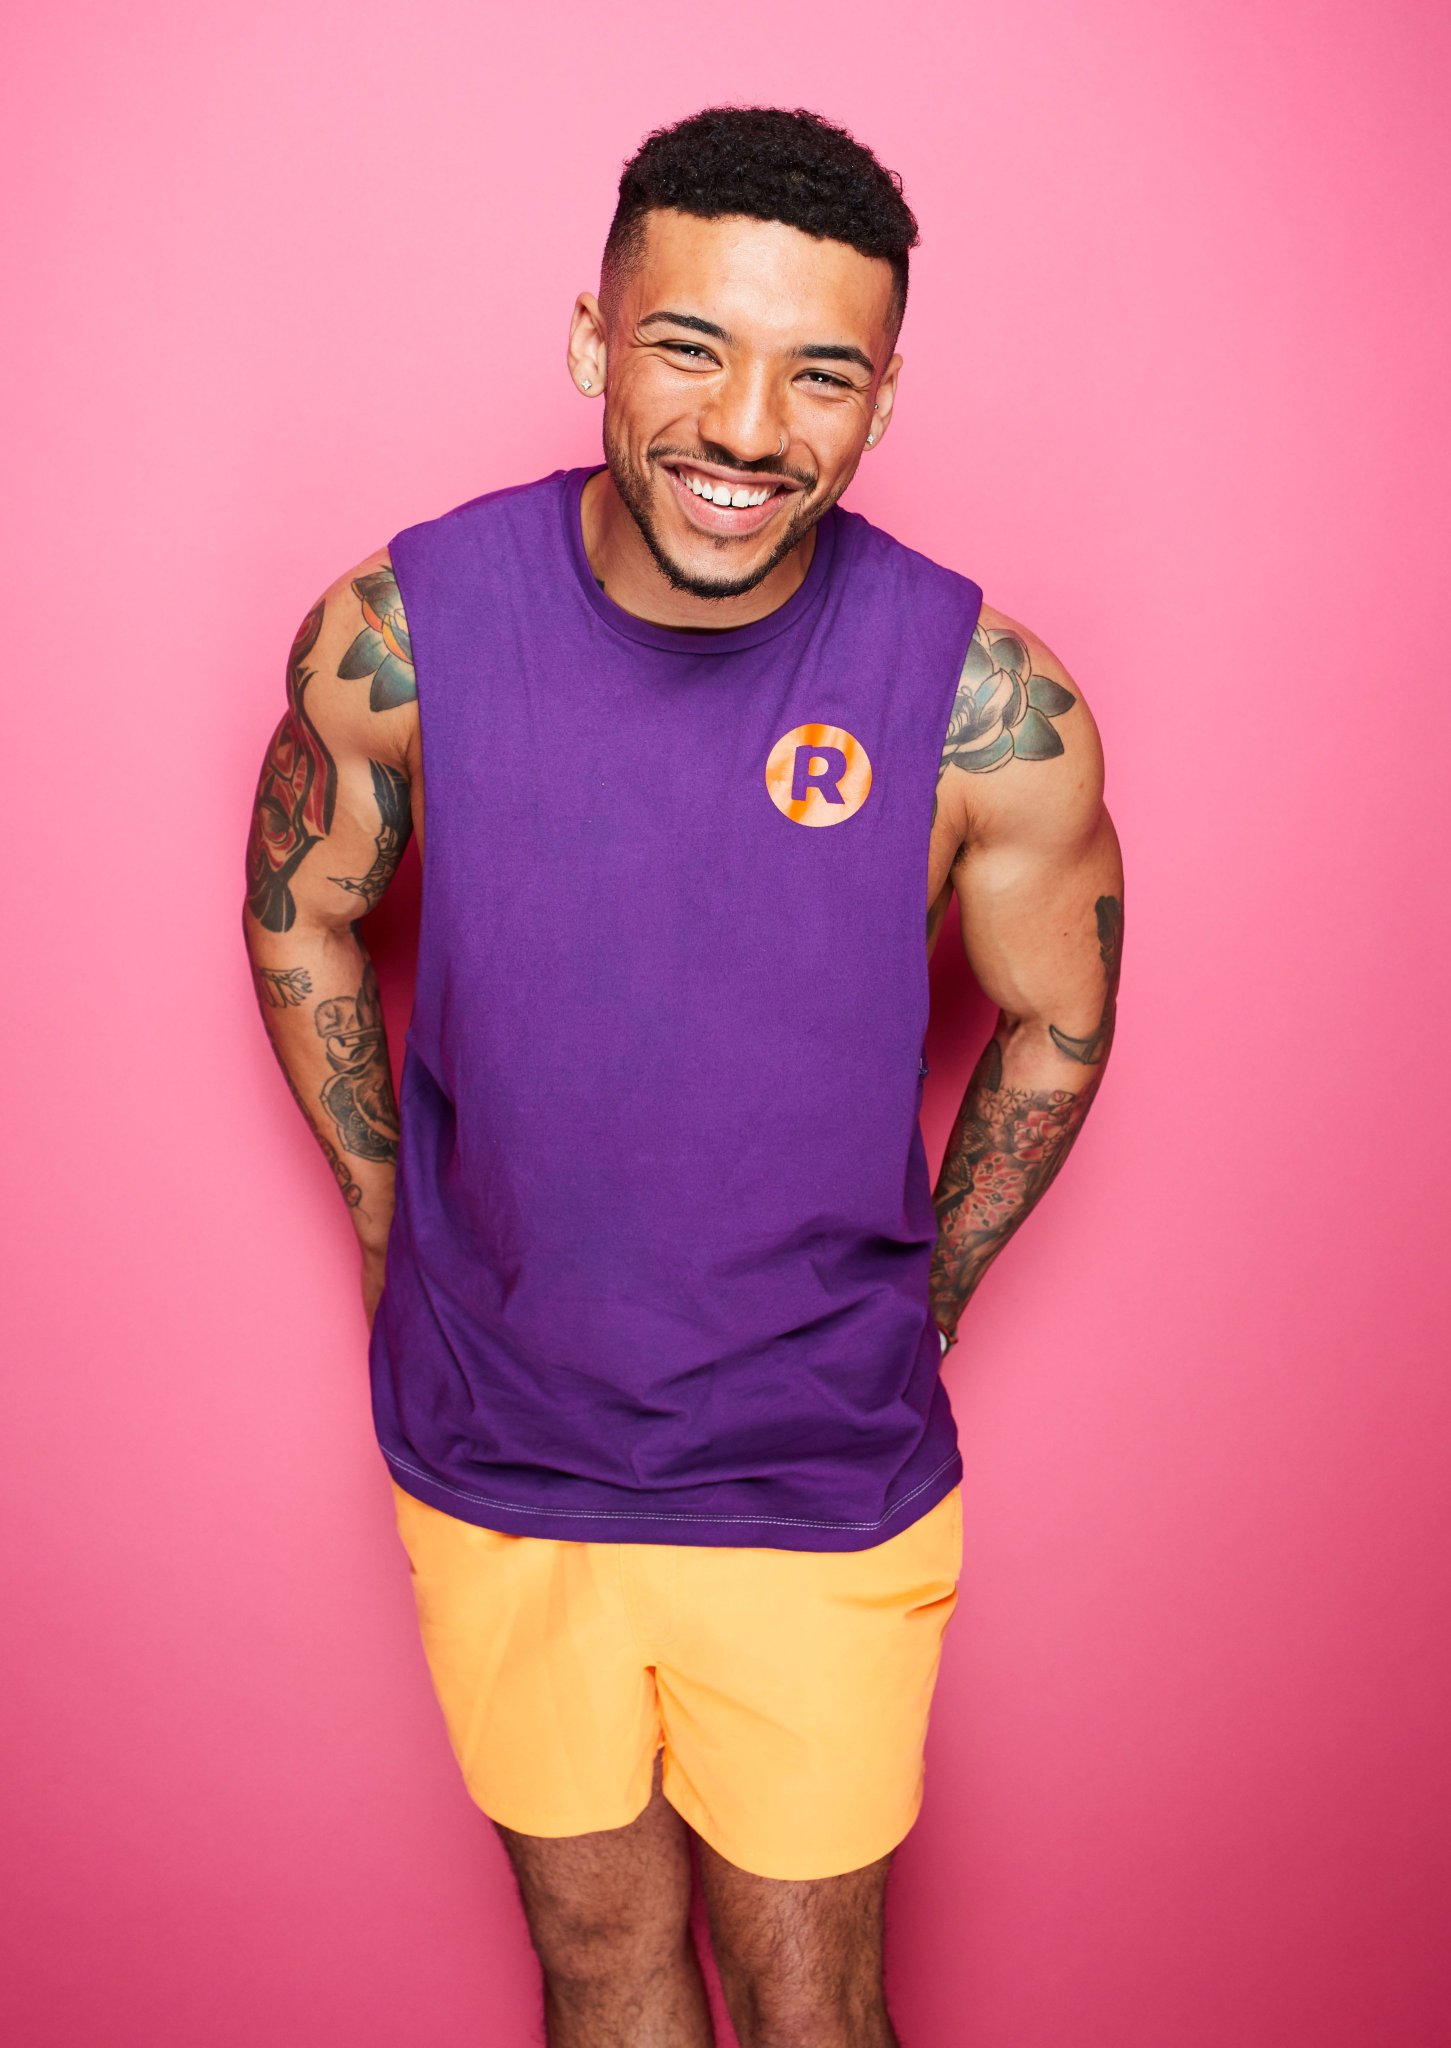 Who's this guy? 👇🏼  Find out in @IbizaWeekender tonight 9pm @itv2 ☀️❤️🌴 #IbizaWeekender https://t.co/dDecvz6ukk